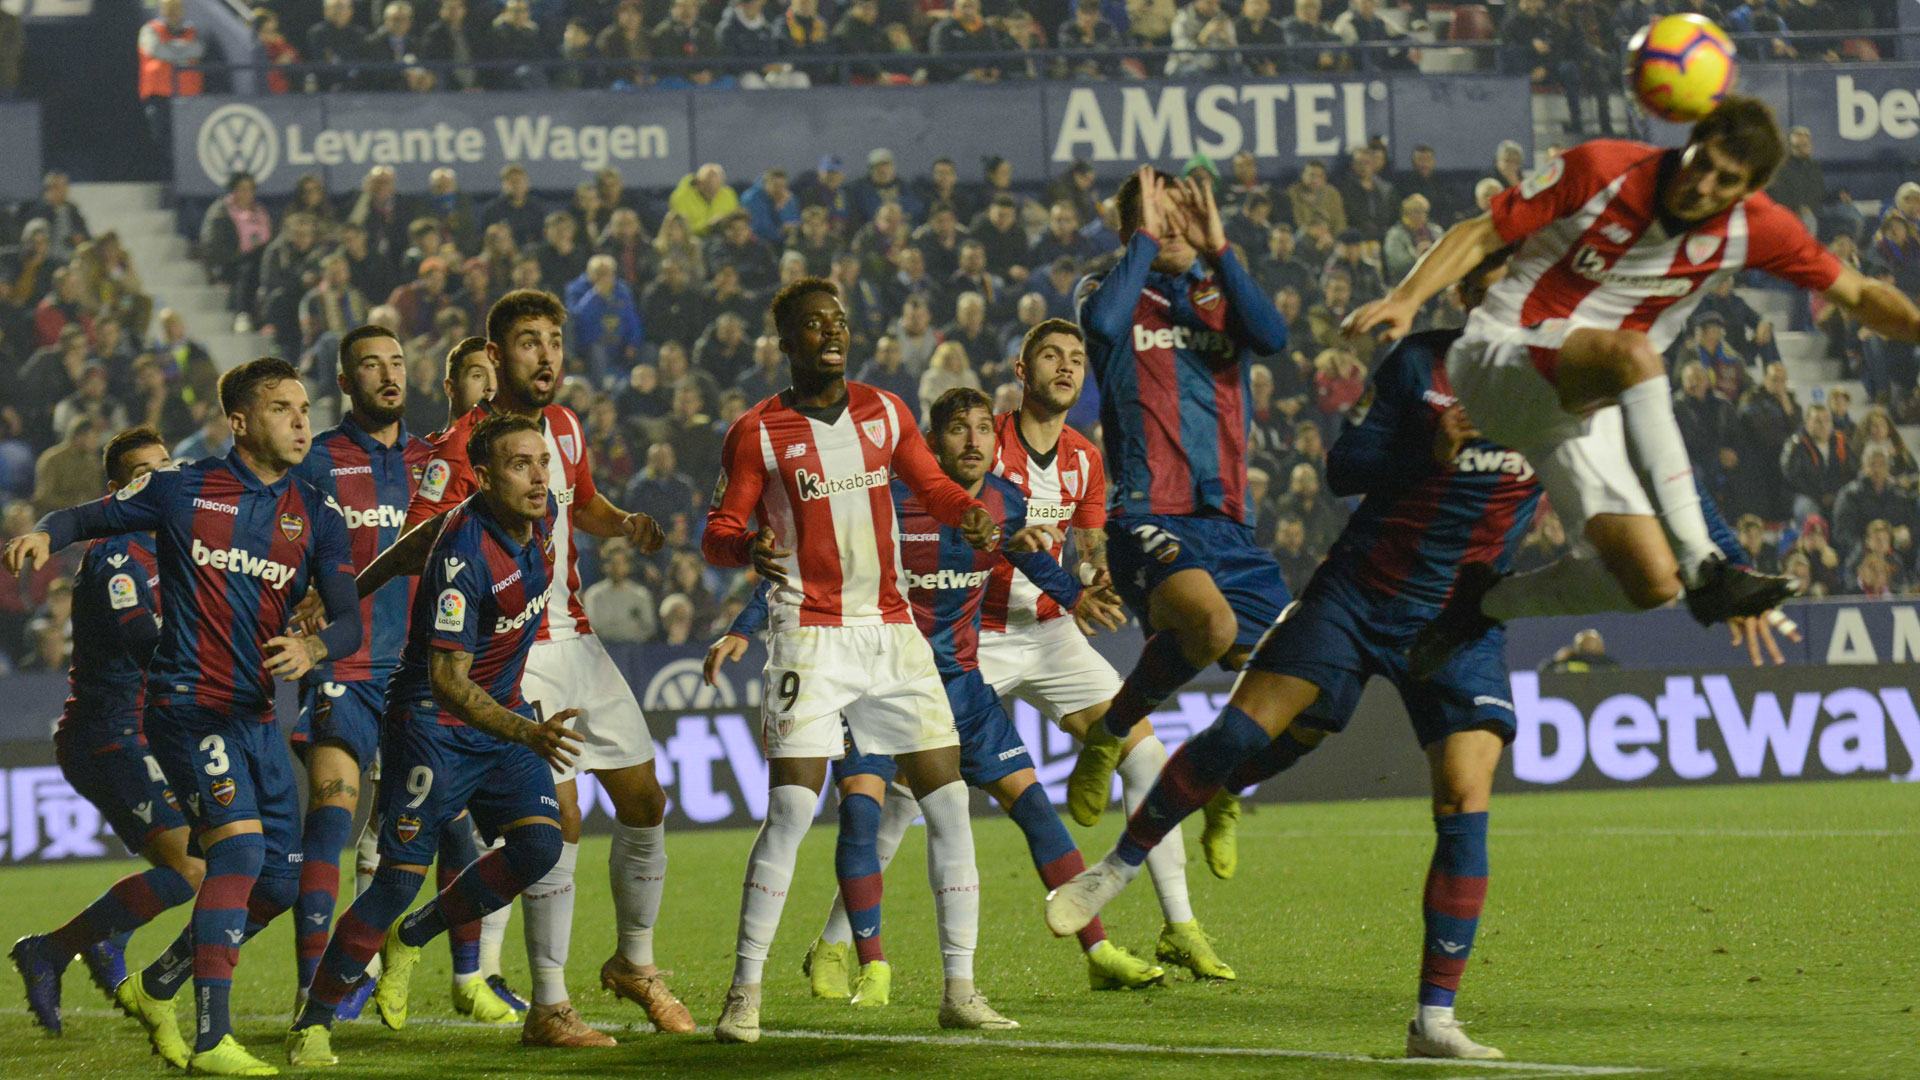 Athletic Club-Levante UD, txartel salmenta